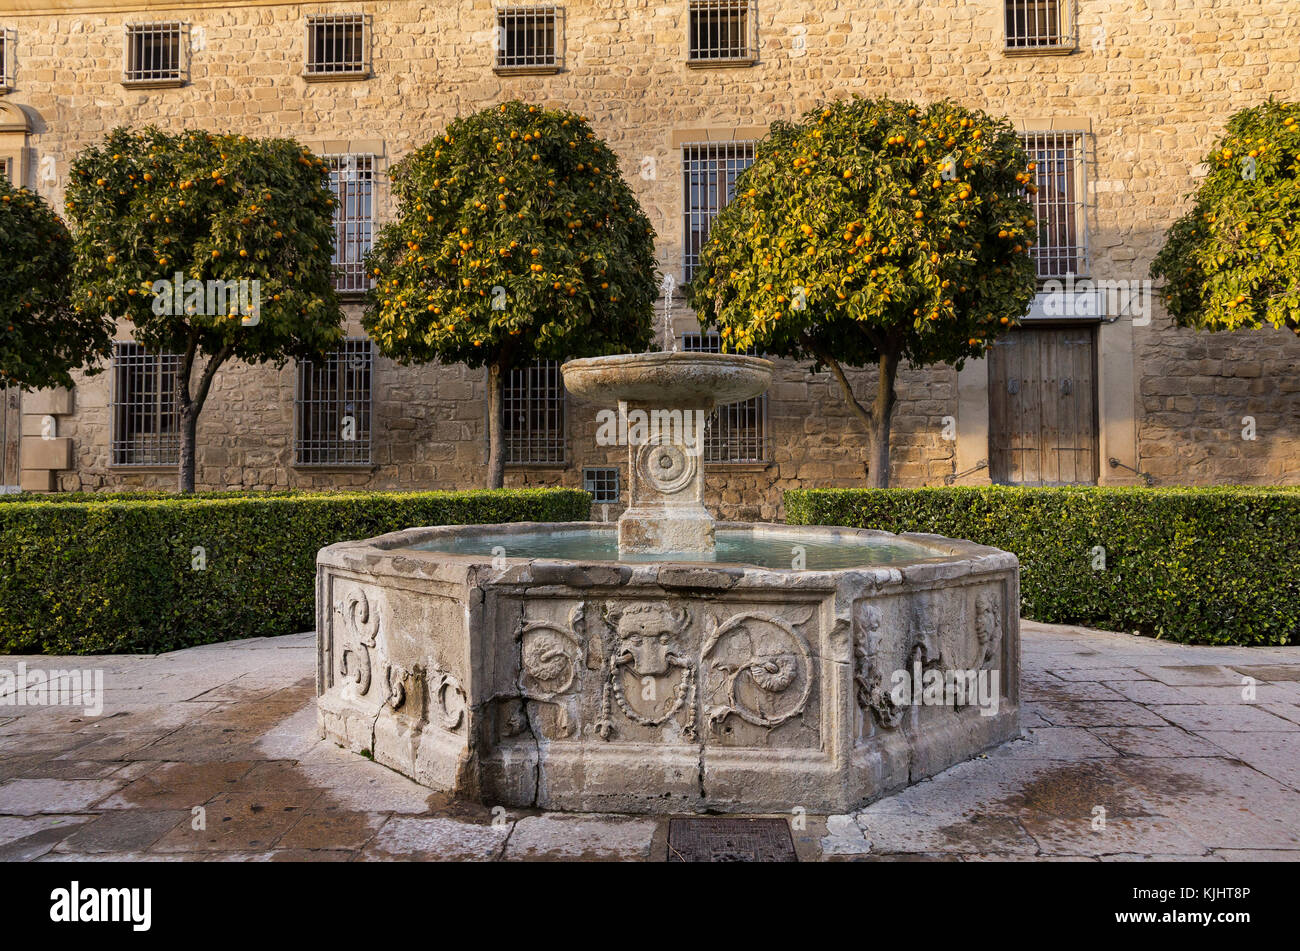 Fountain in a quiet square in Úbeda, Andalucía with a background of orange trees - Stock Image